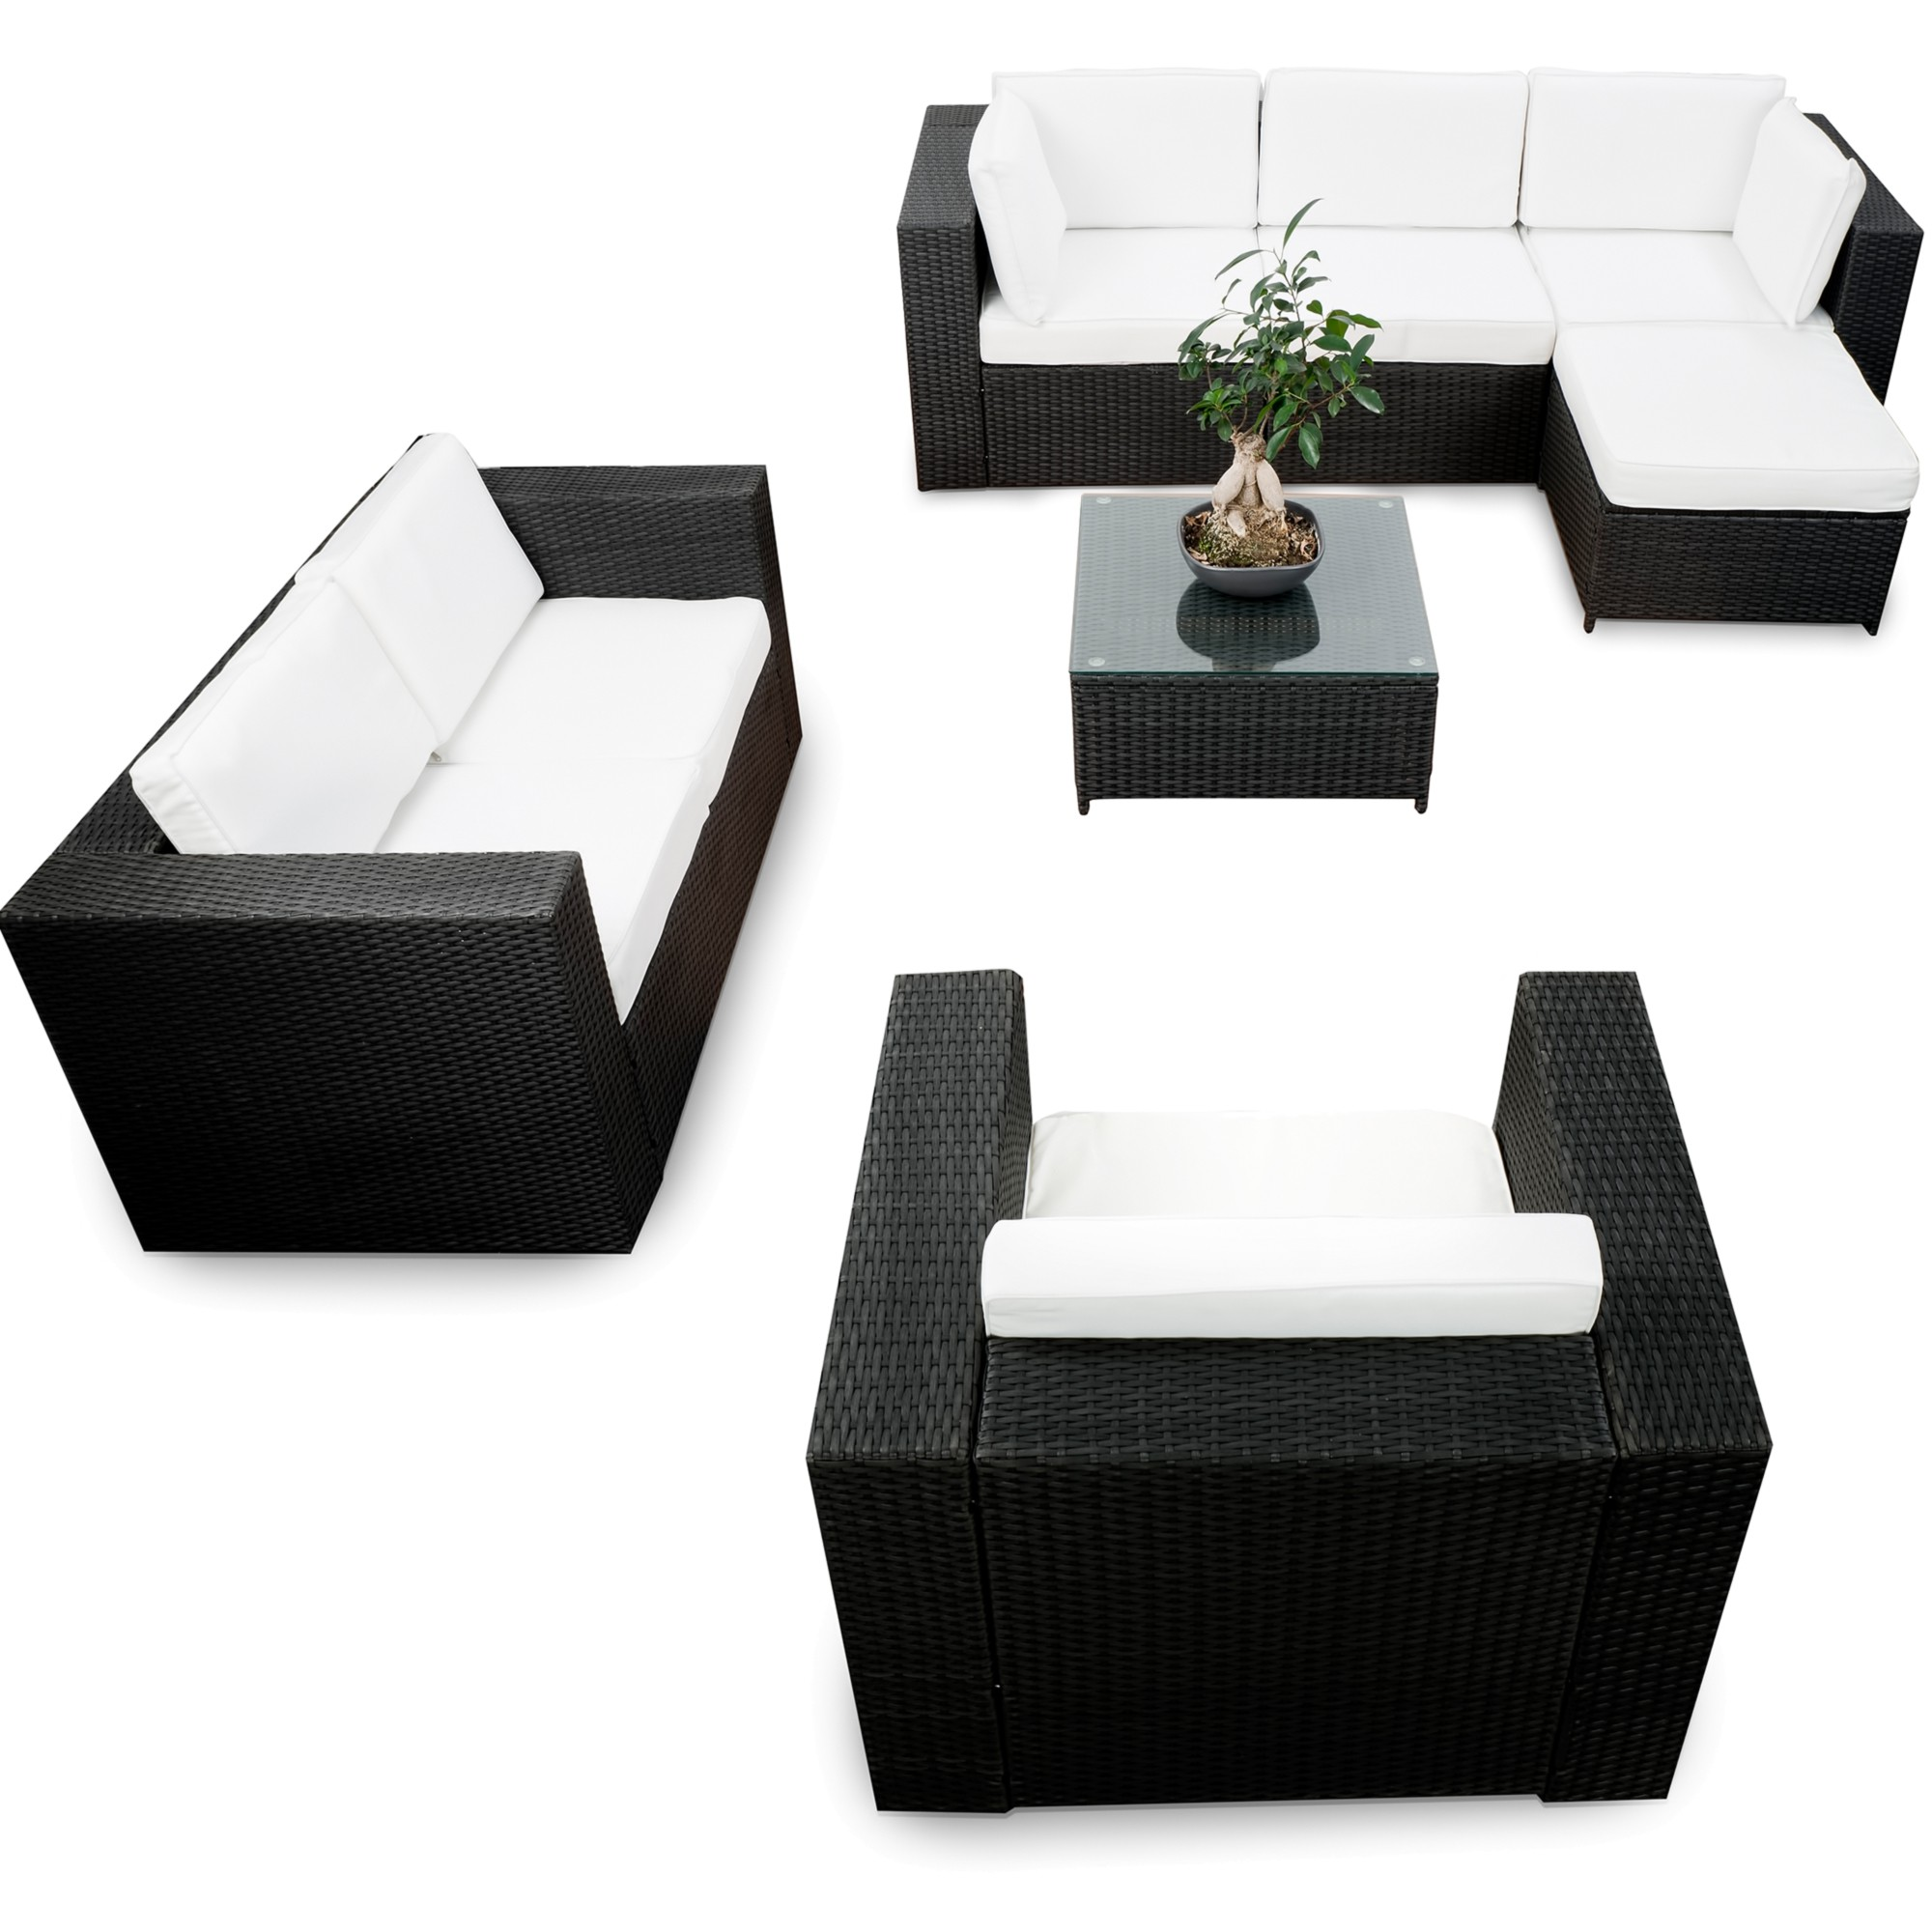 rattan lounge ausverkauf g nstig lounge rattan angebot kaufen. Black Bedroom Furniture Sets. Home Design Ideas